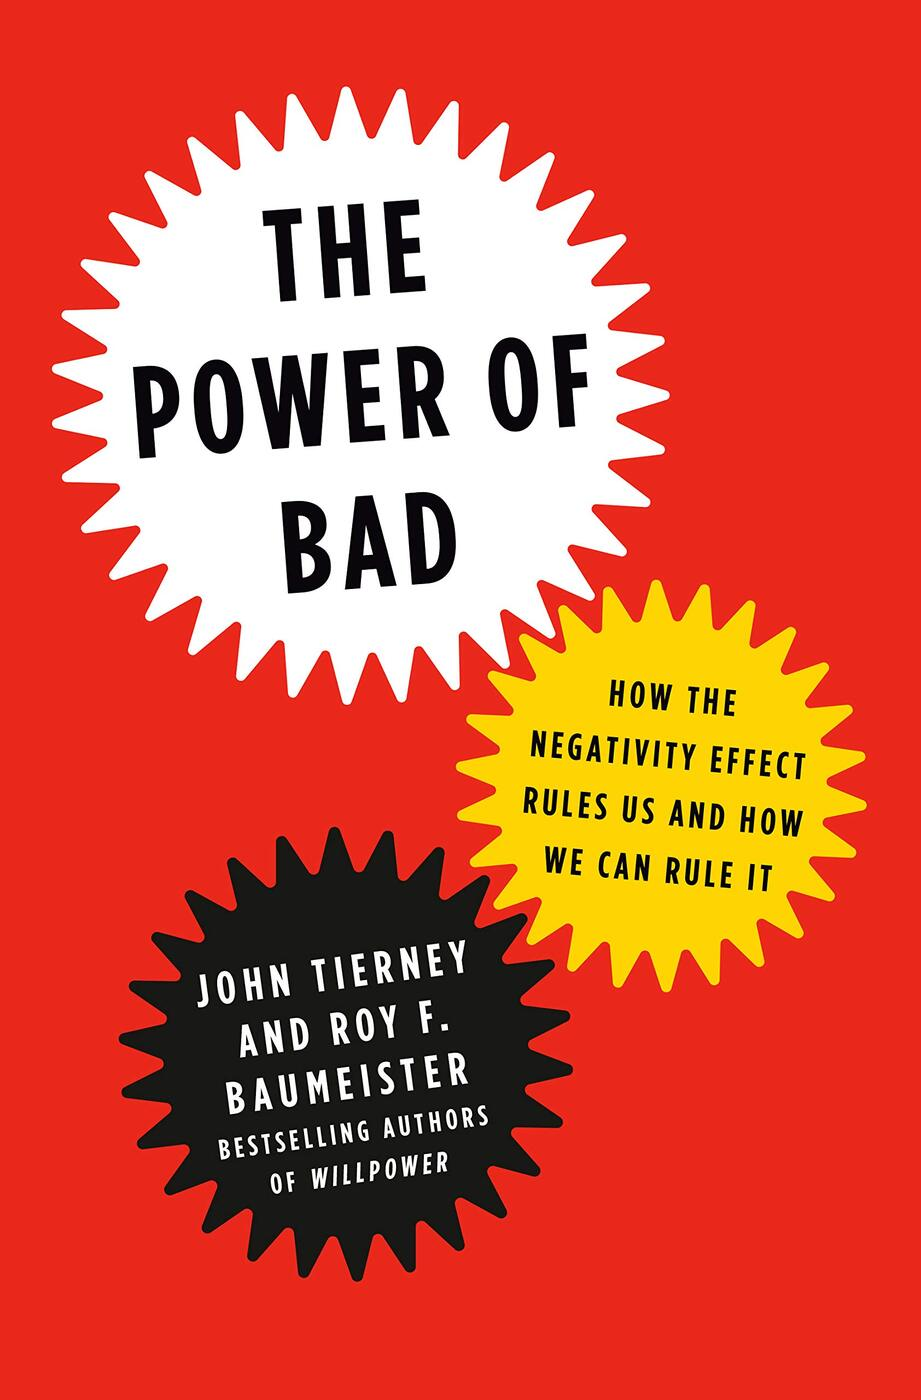 The Power of Bad by John Tierney